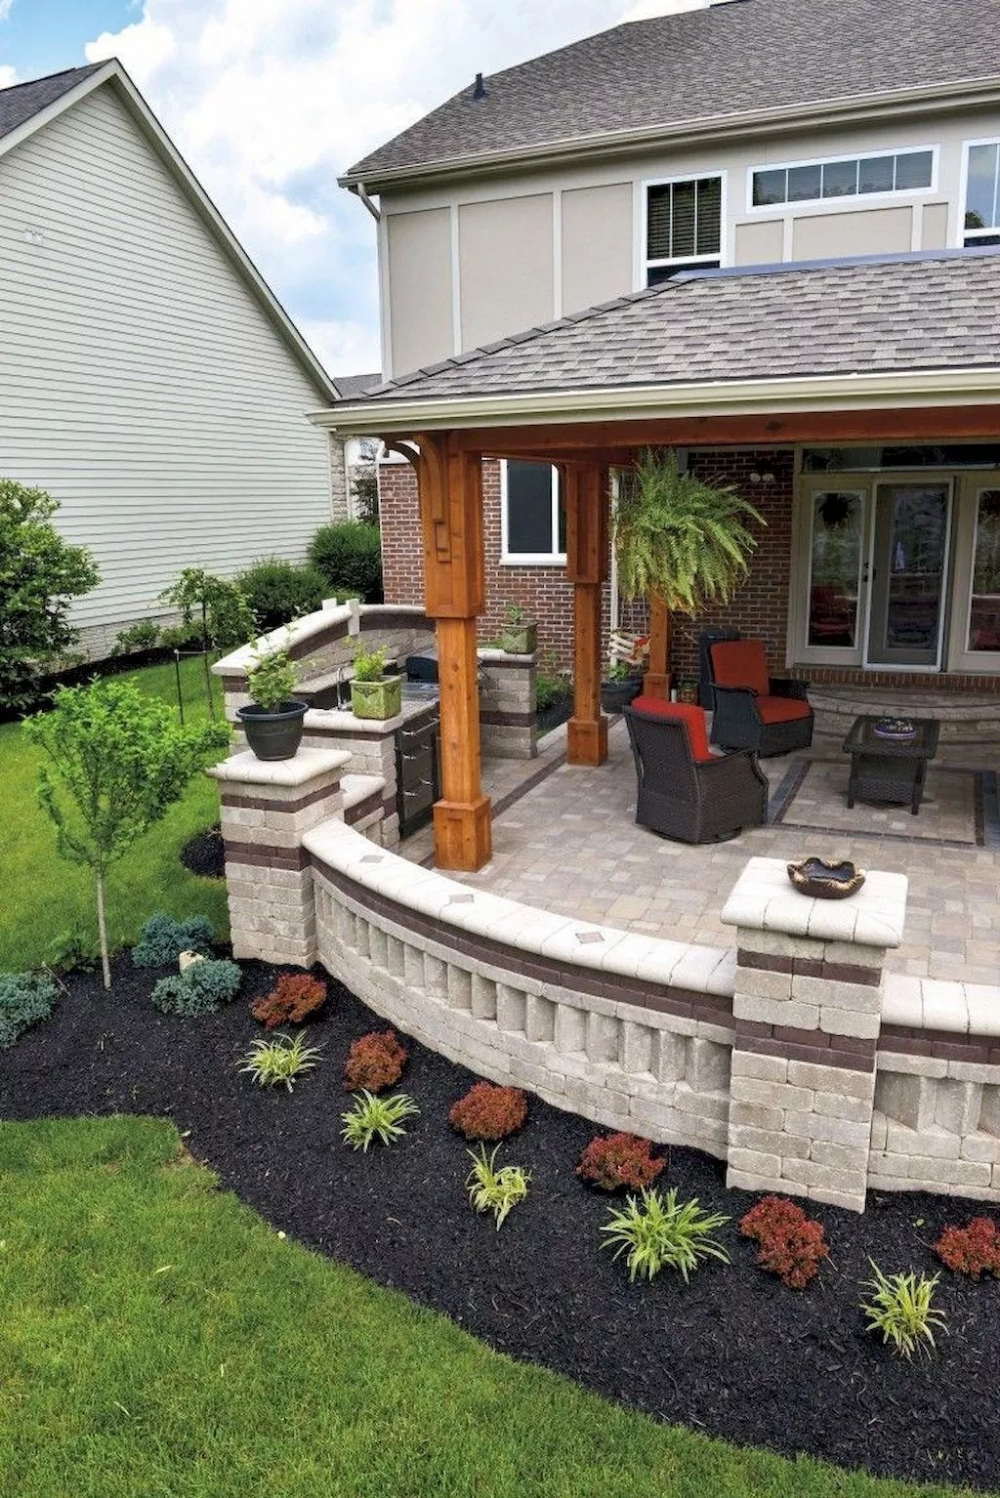 54 Awesome Backyard Patio Deck Design And Decor Ideas Patio Deck